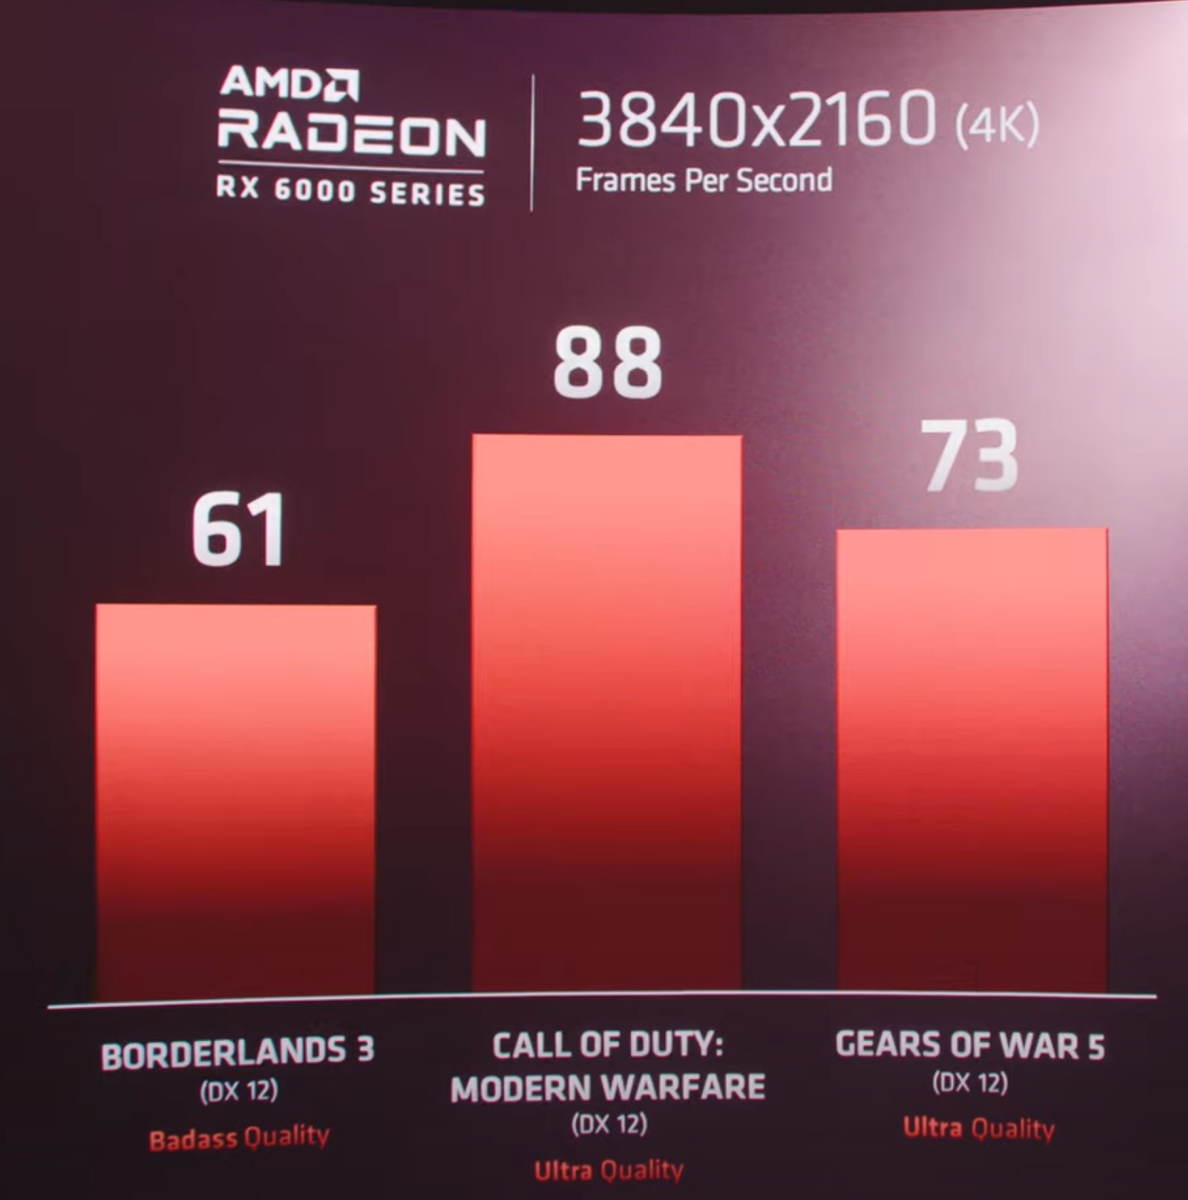 4K gaming benchmarks for an upcoming AMD RX 6000 GPU. Source: AMD.